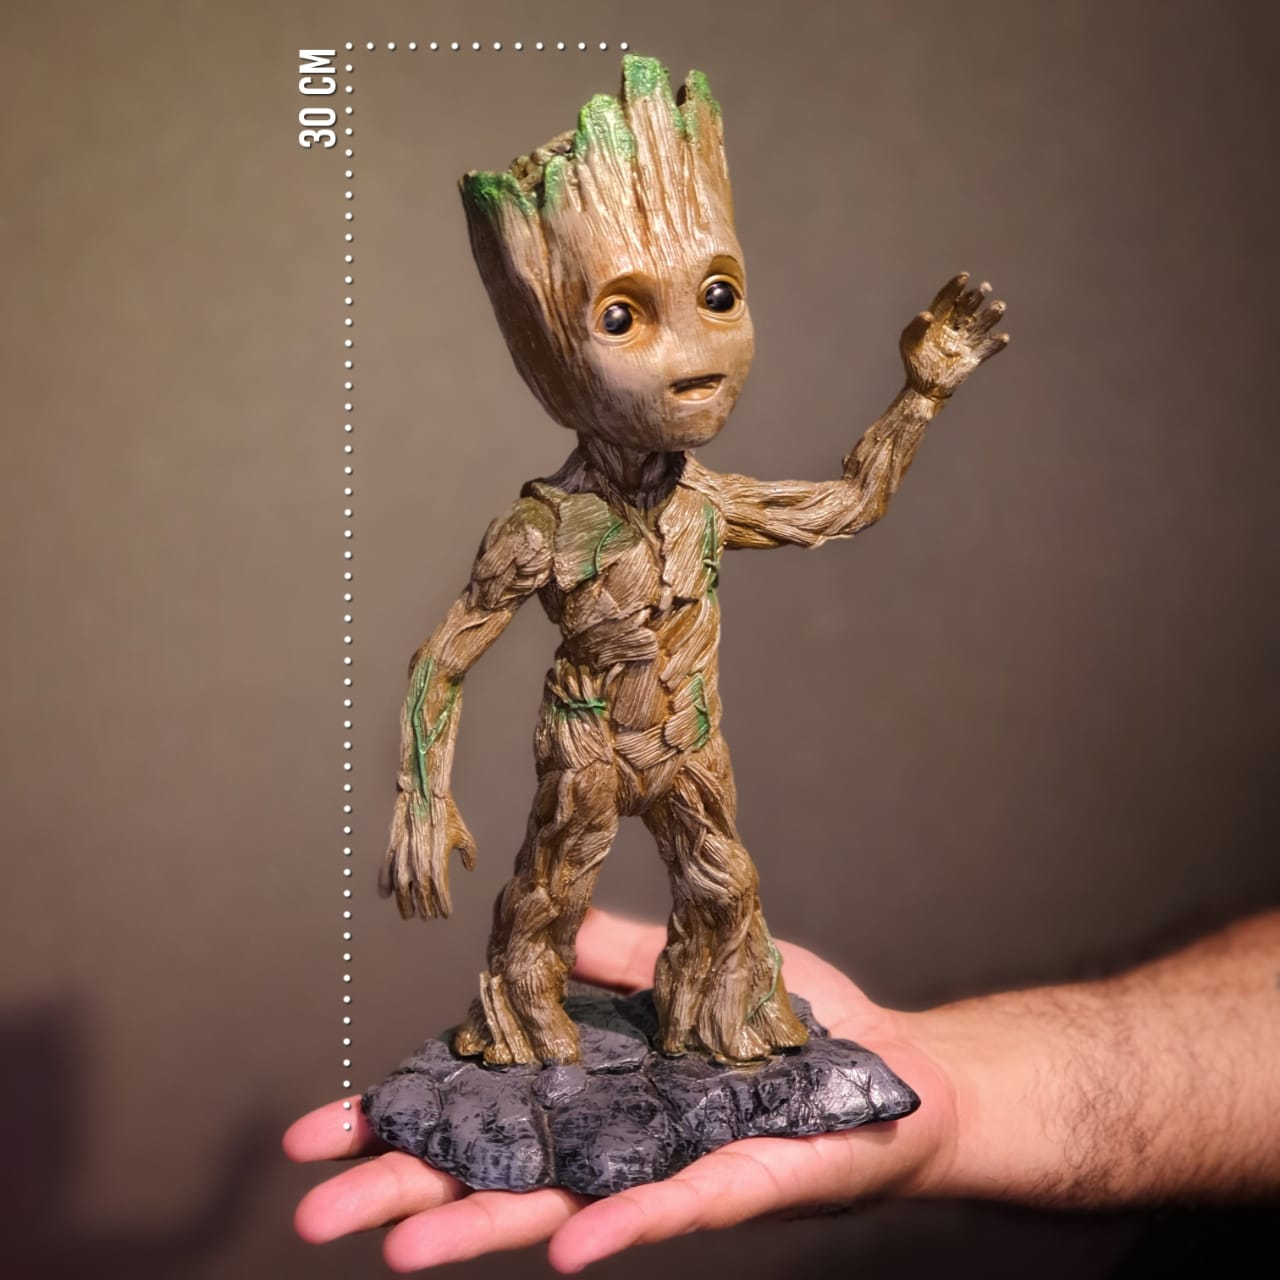 Estátua Baby Groot: Guardiões da Galáxia Vol. 2 (Guardians of the Galaxy Vol. 2) - Marvel -wars